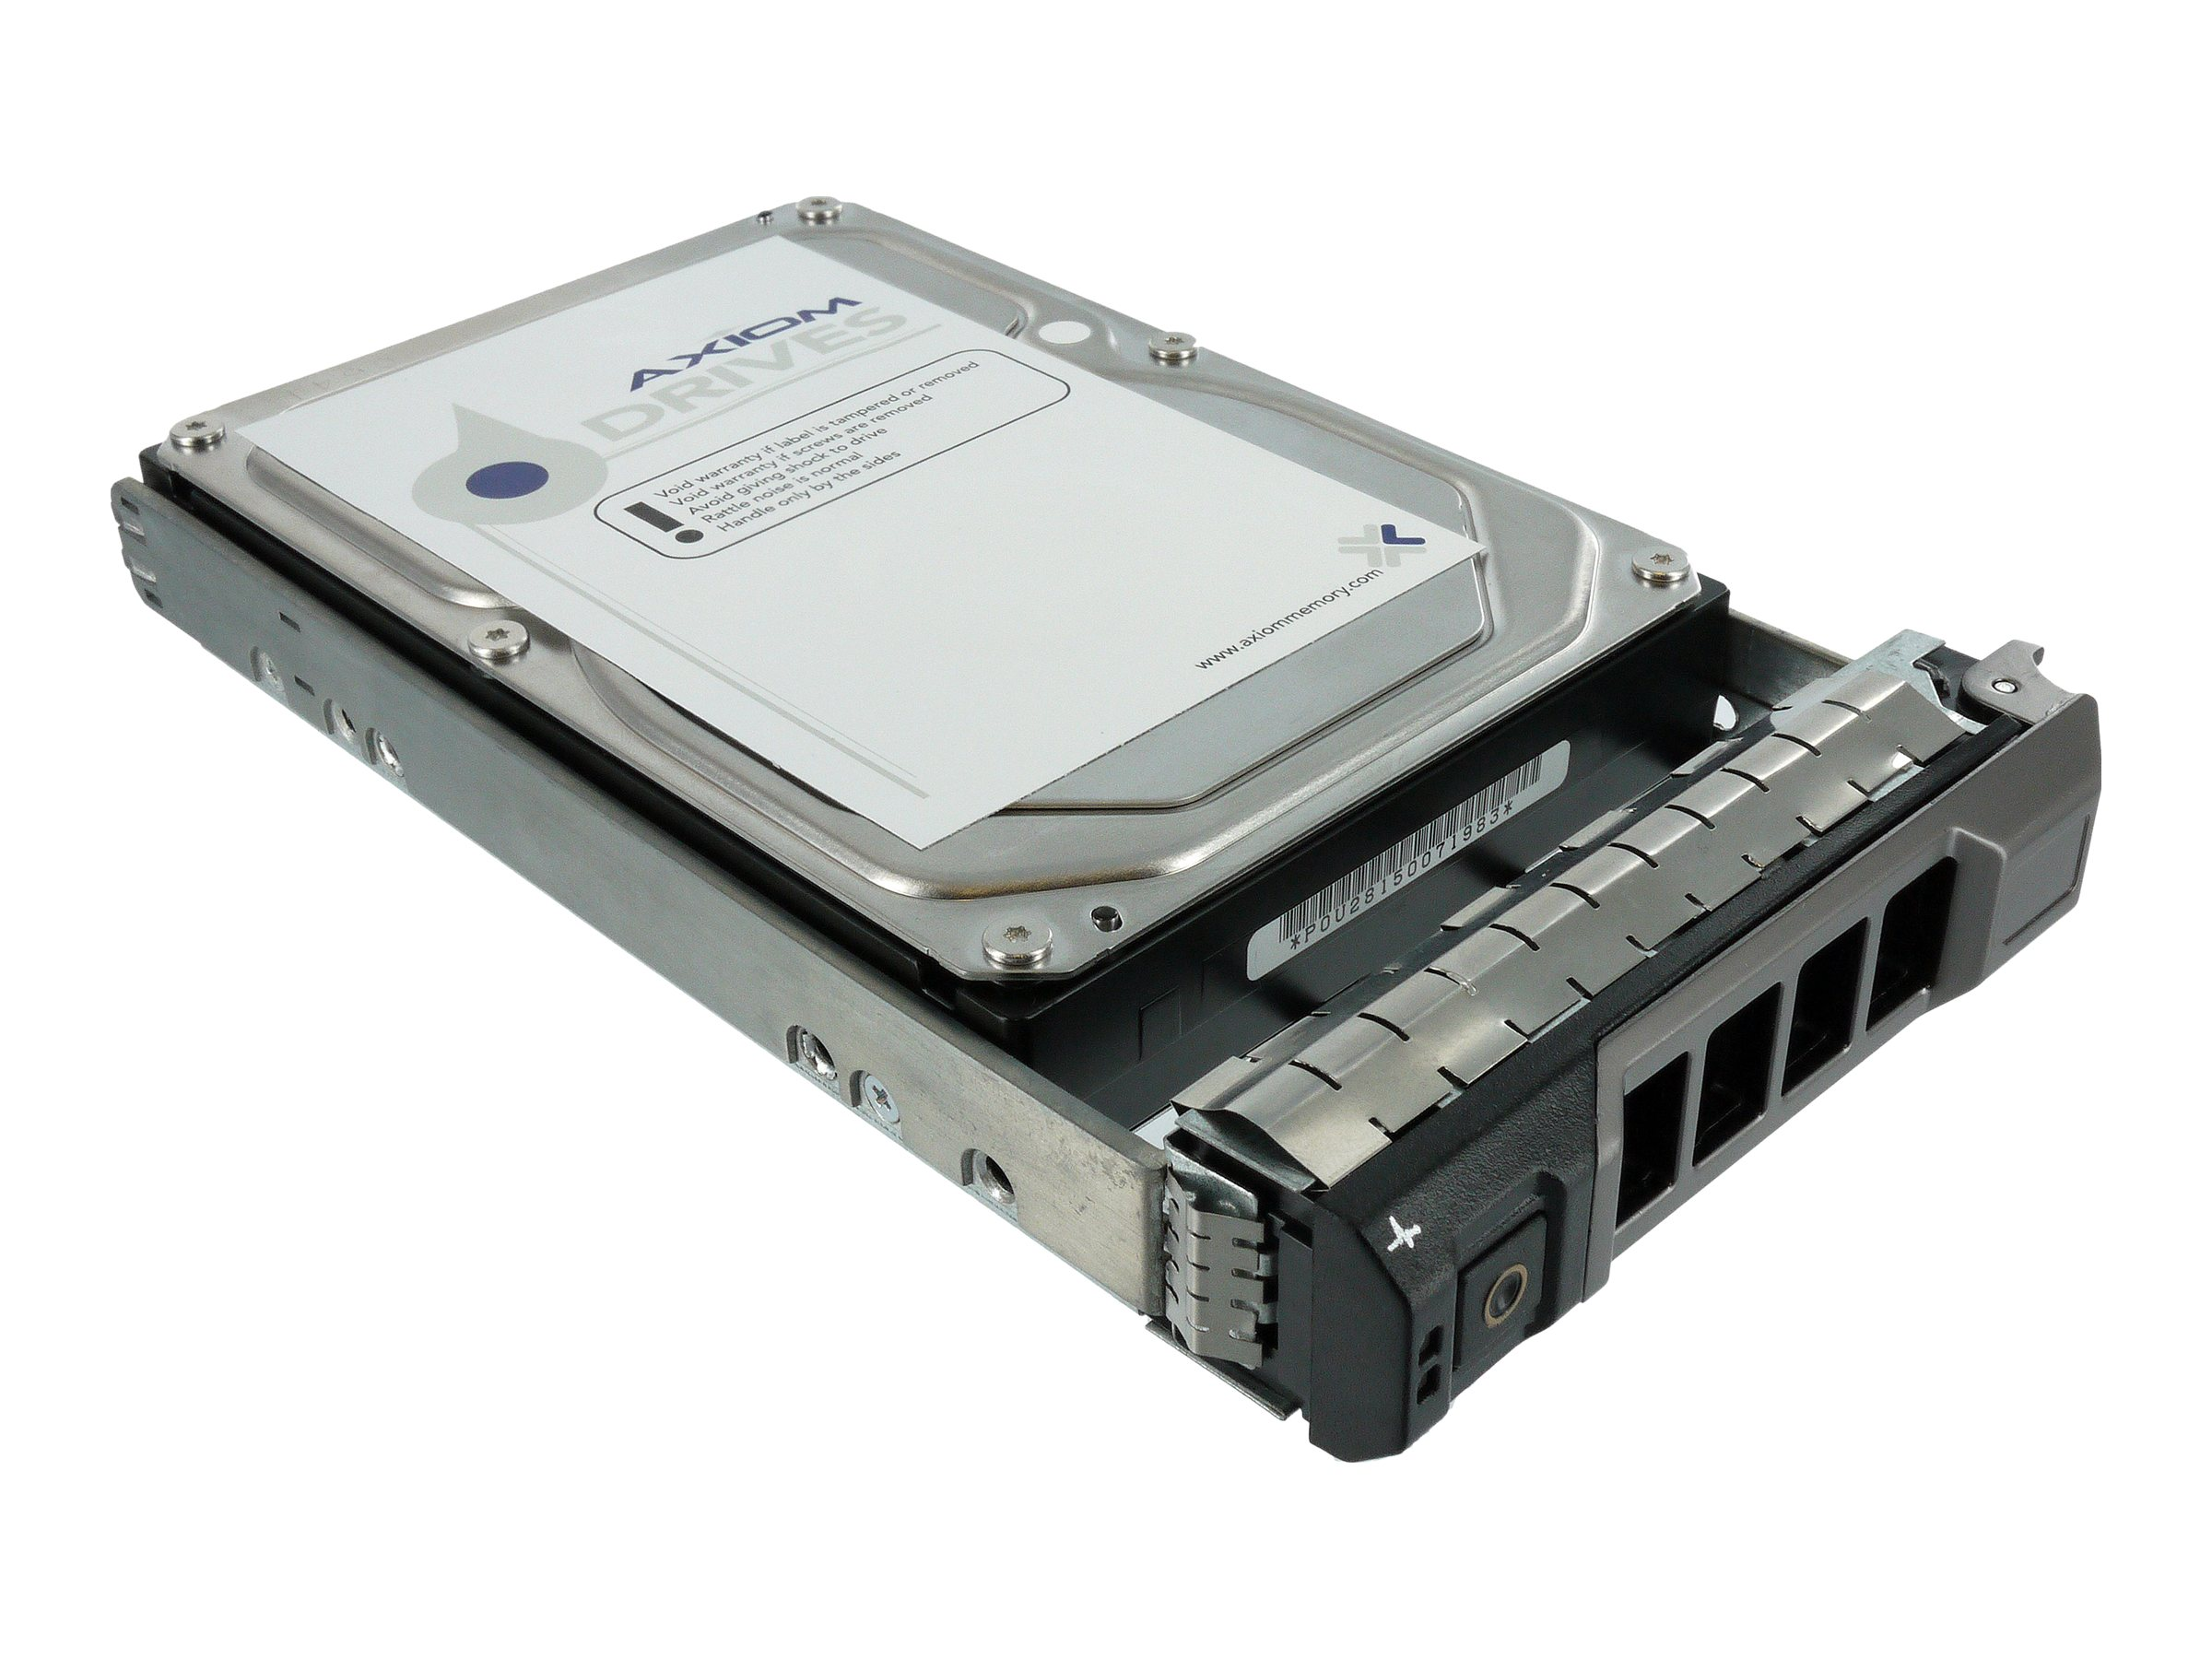 Axiom 4TB SATA 6Gb s 7.2K RPM 3.5 Enterprise Hard Drive for Dell PowerEdge R230, R310, R320, R330, R410